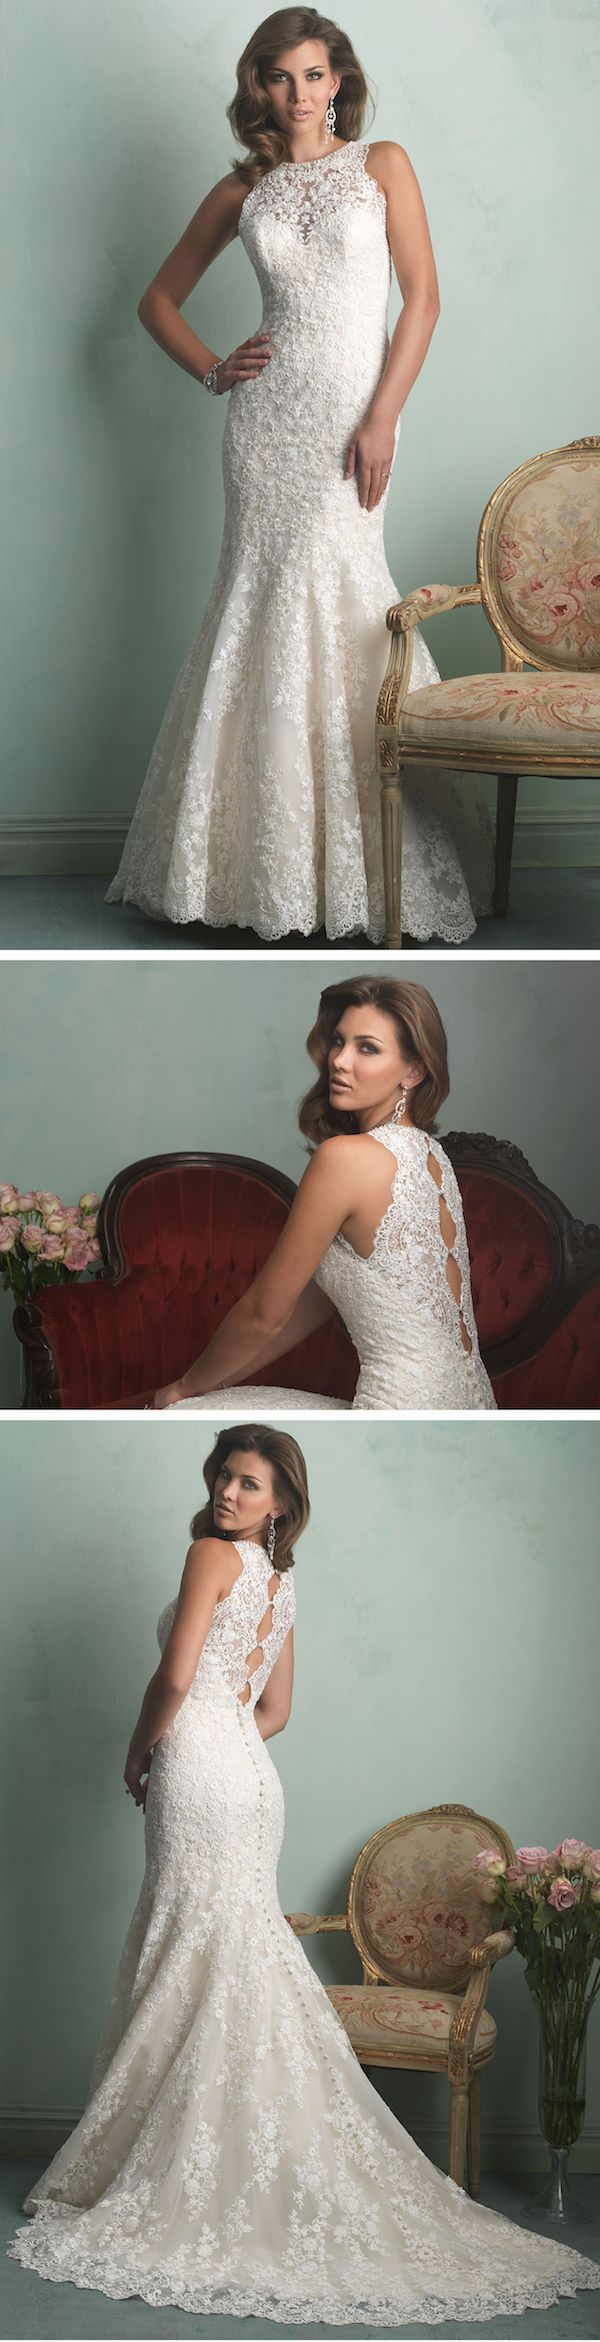 Allure 9154 Wedding Dresses IndianaLe Salon Bridal Boutique & Bridal Shop | Michigan, Northwest Indiana, Chicago